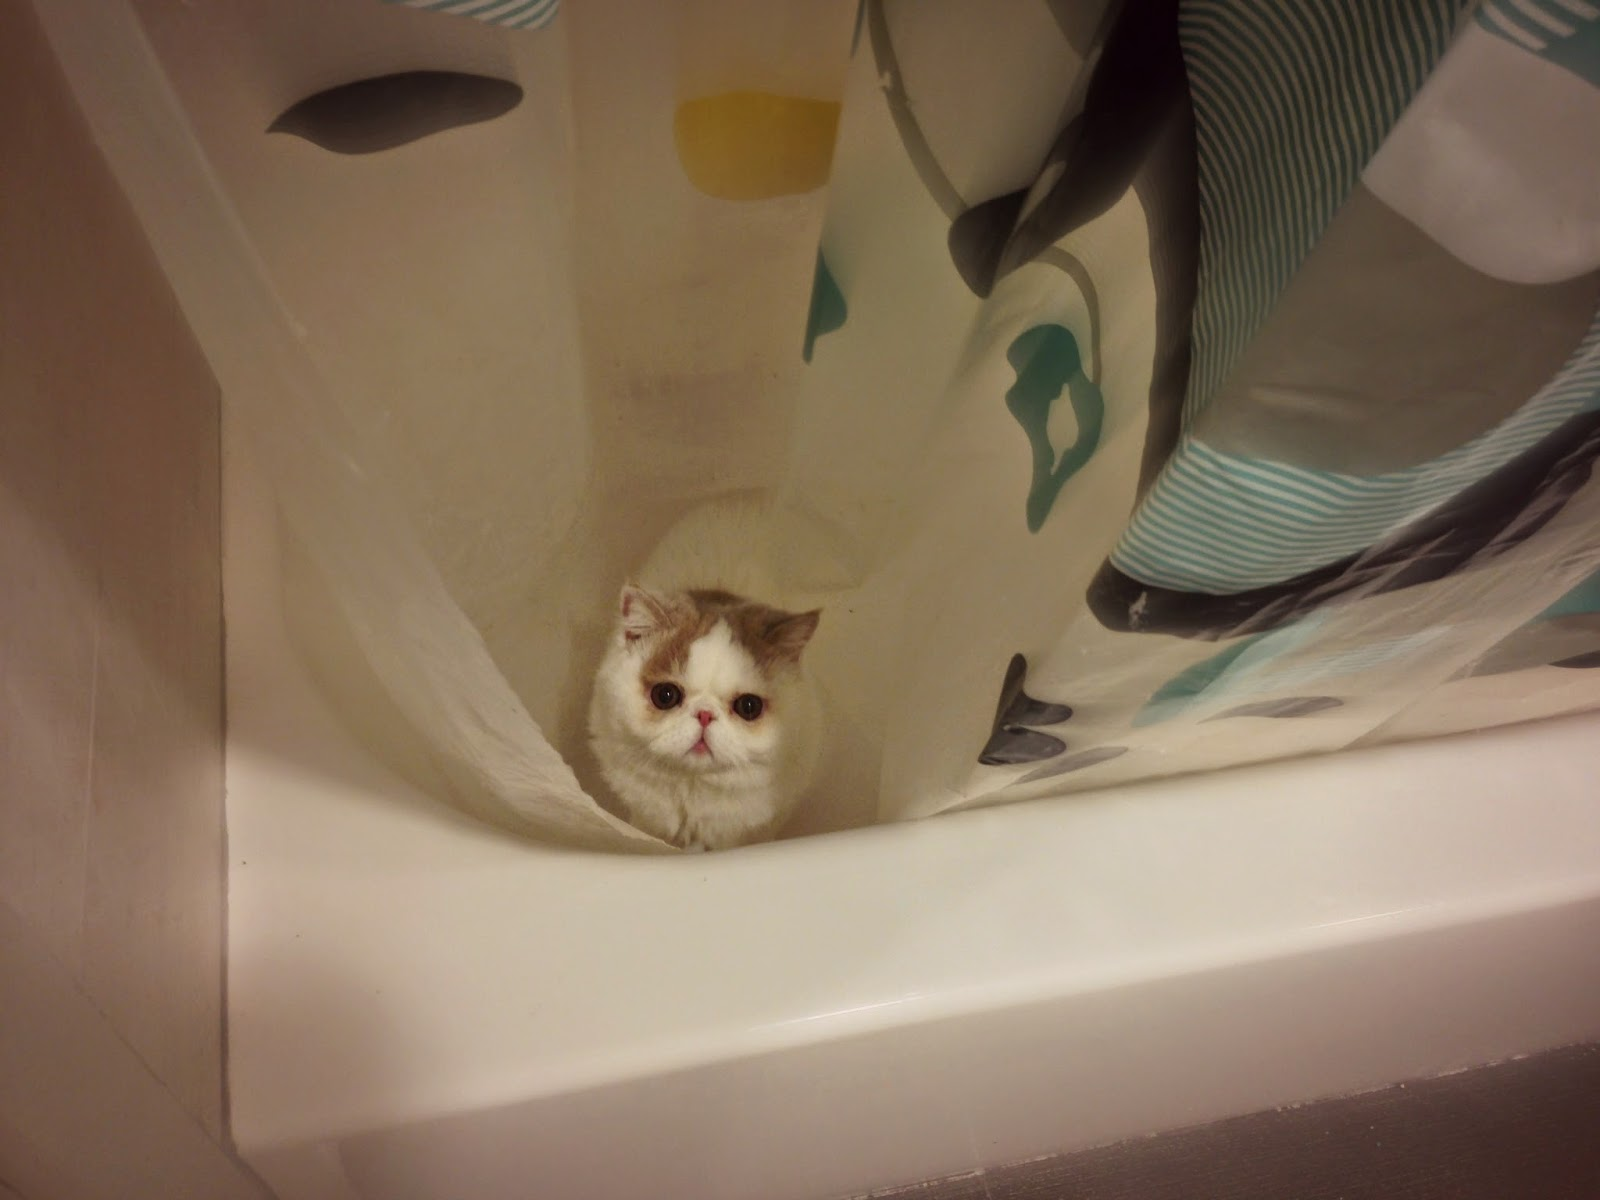 Kitten Shower Curtain Party with Family | ♥ SweetFurr ♥